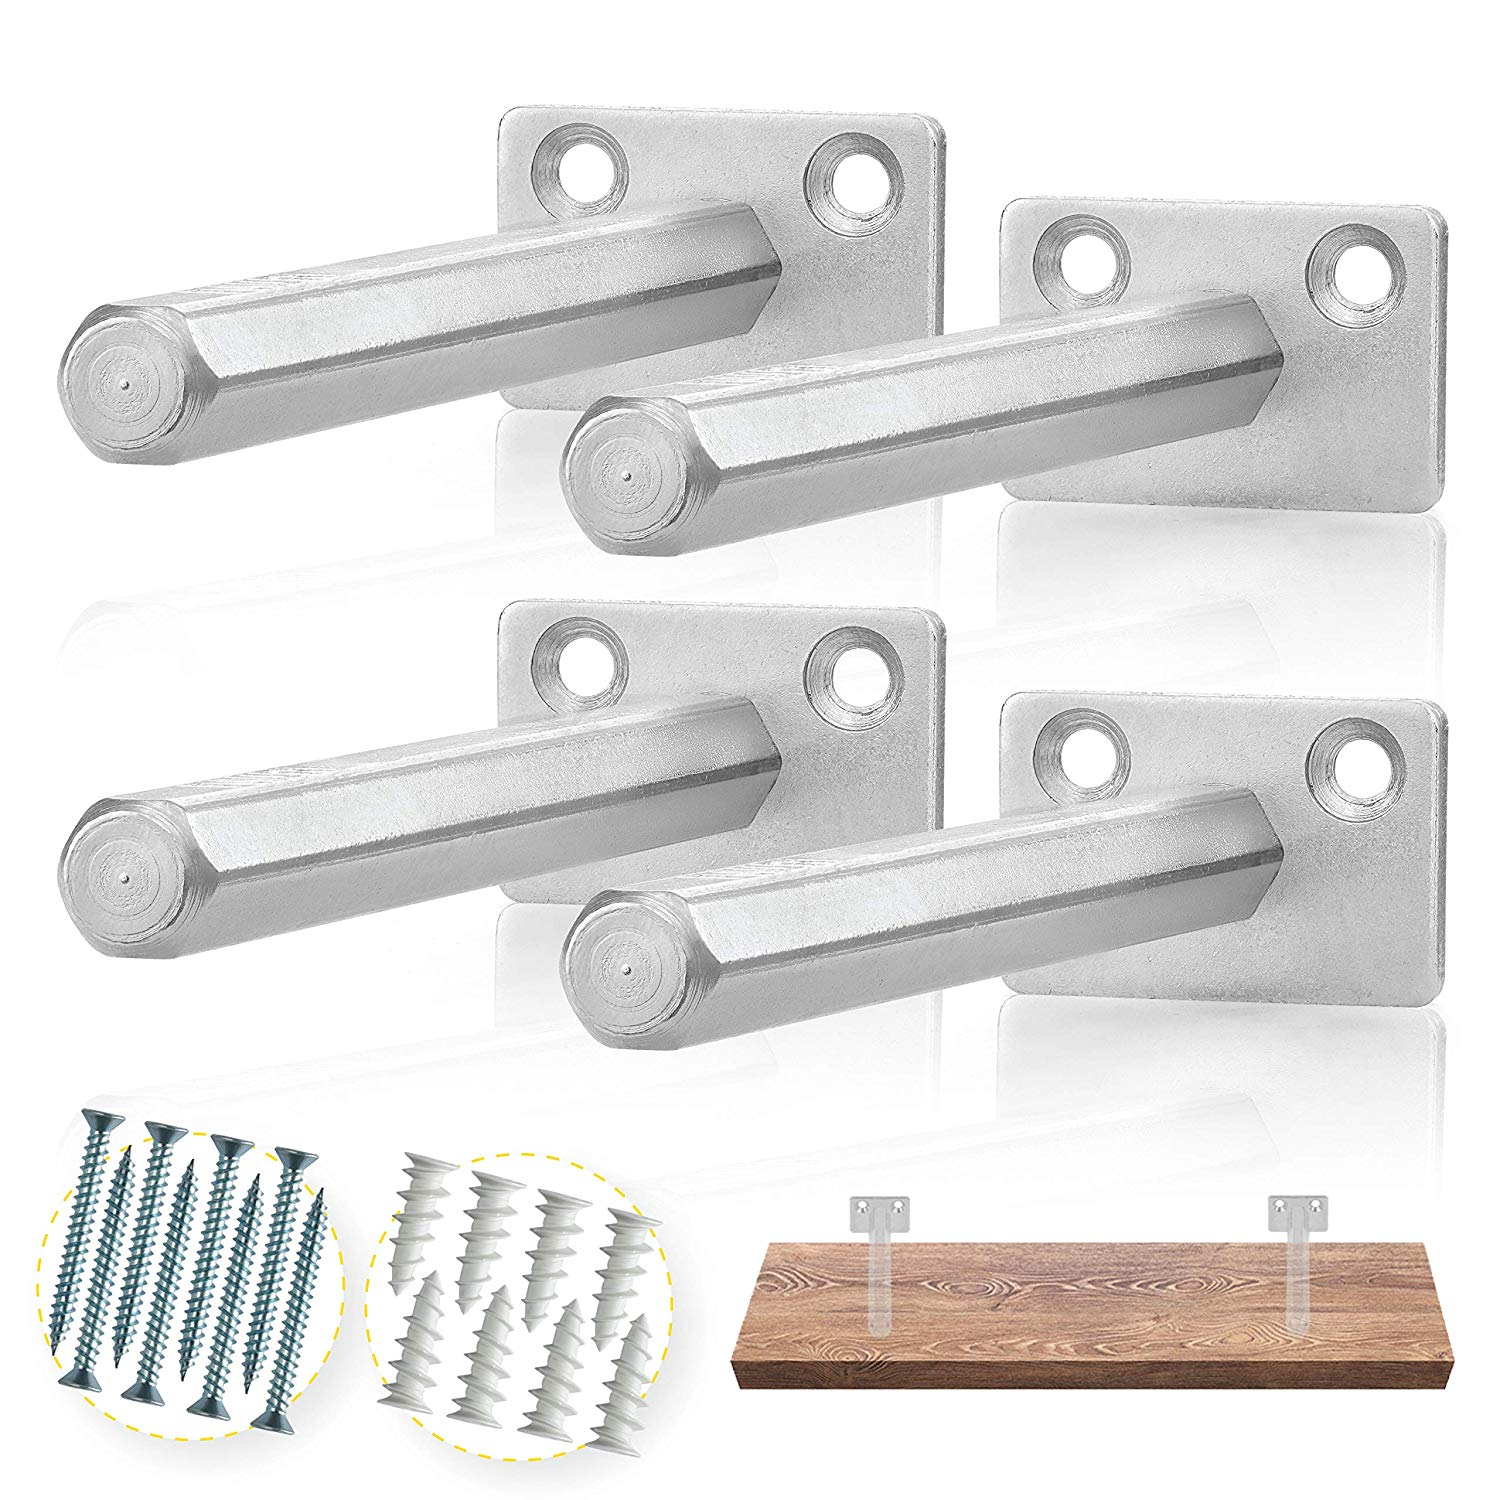 batoda floating shelf bracket pcs galvanized steel xuzl free brackets blind supports hidden for wood shelves concealed support ikea persby oak beam fireplace ideas prepac entryway